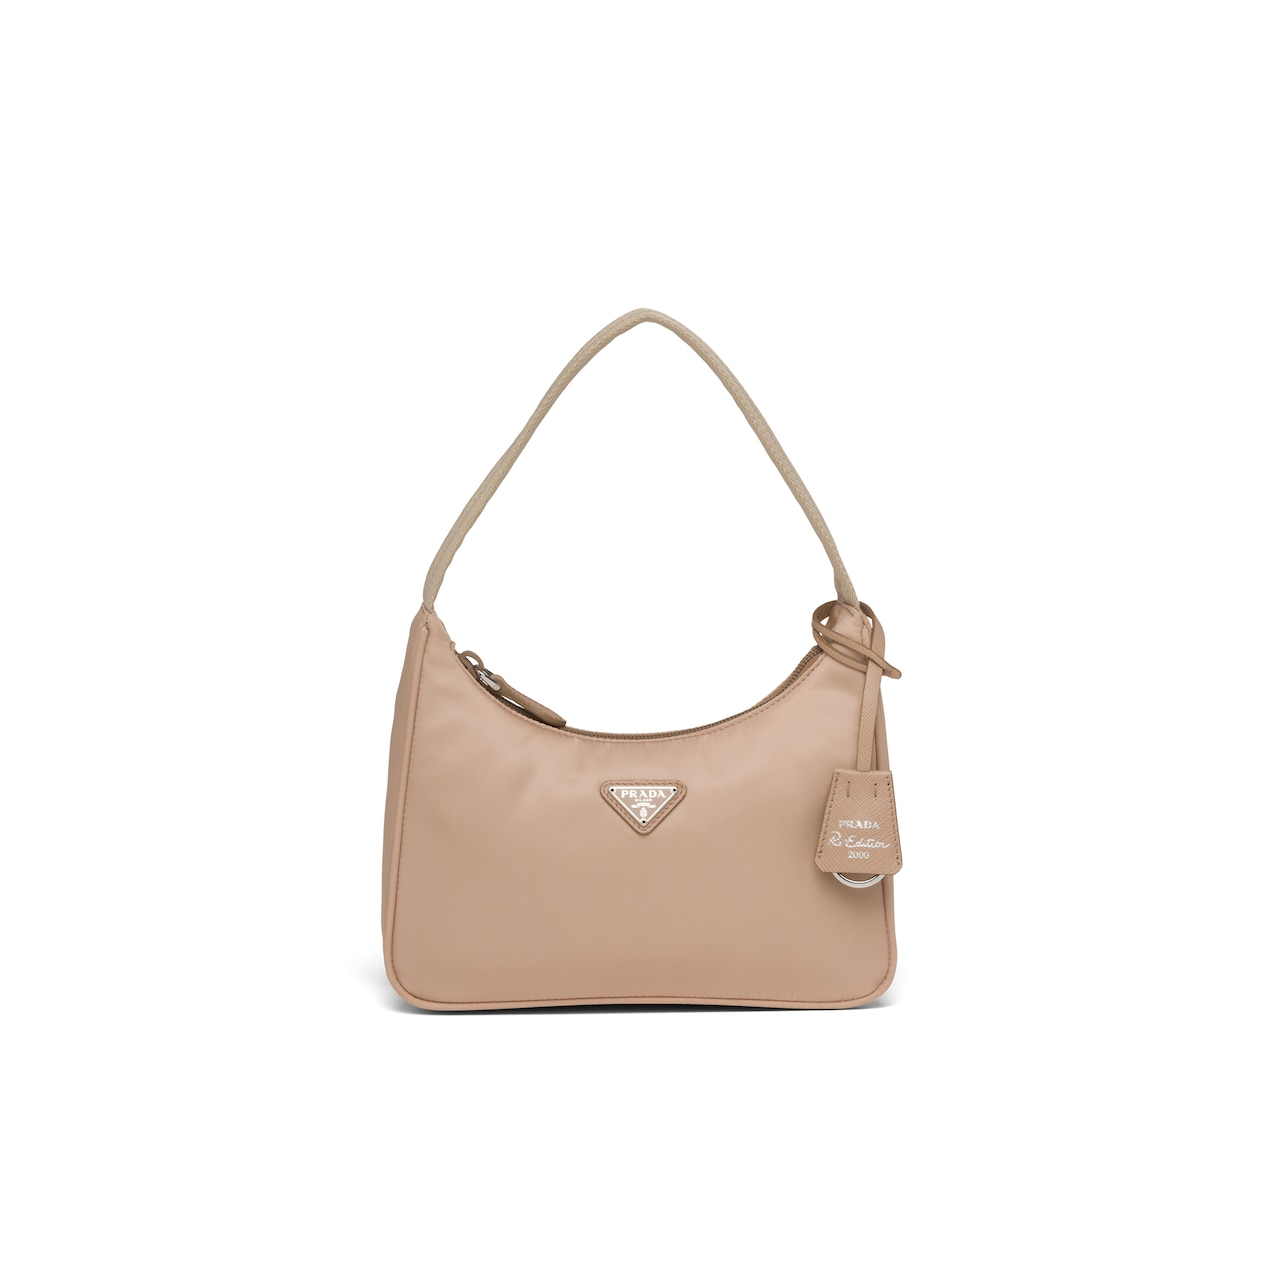 Re-Edition 2000 nylon mini-bag by Prada, available on prada.com for $725 Elsa Hosk Bags Exact Product